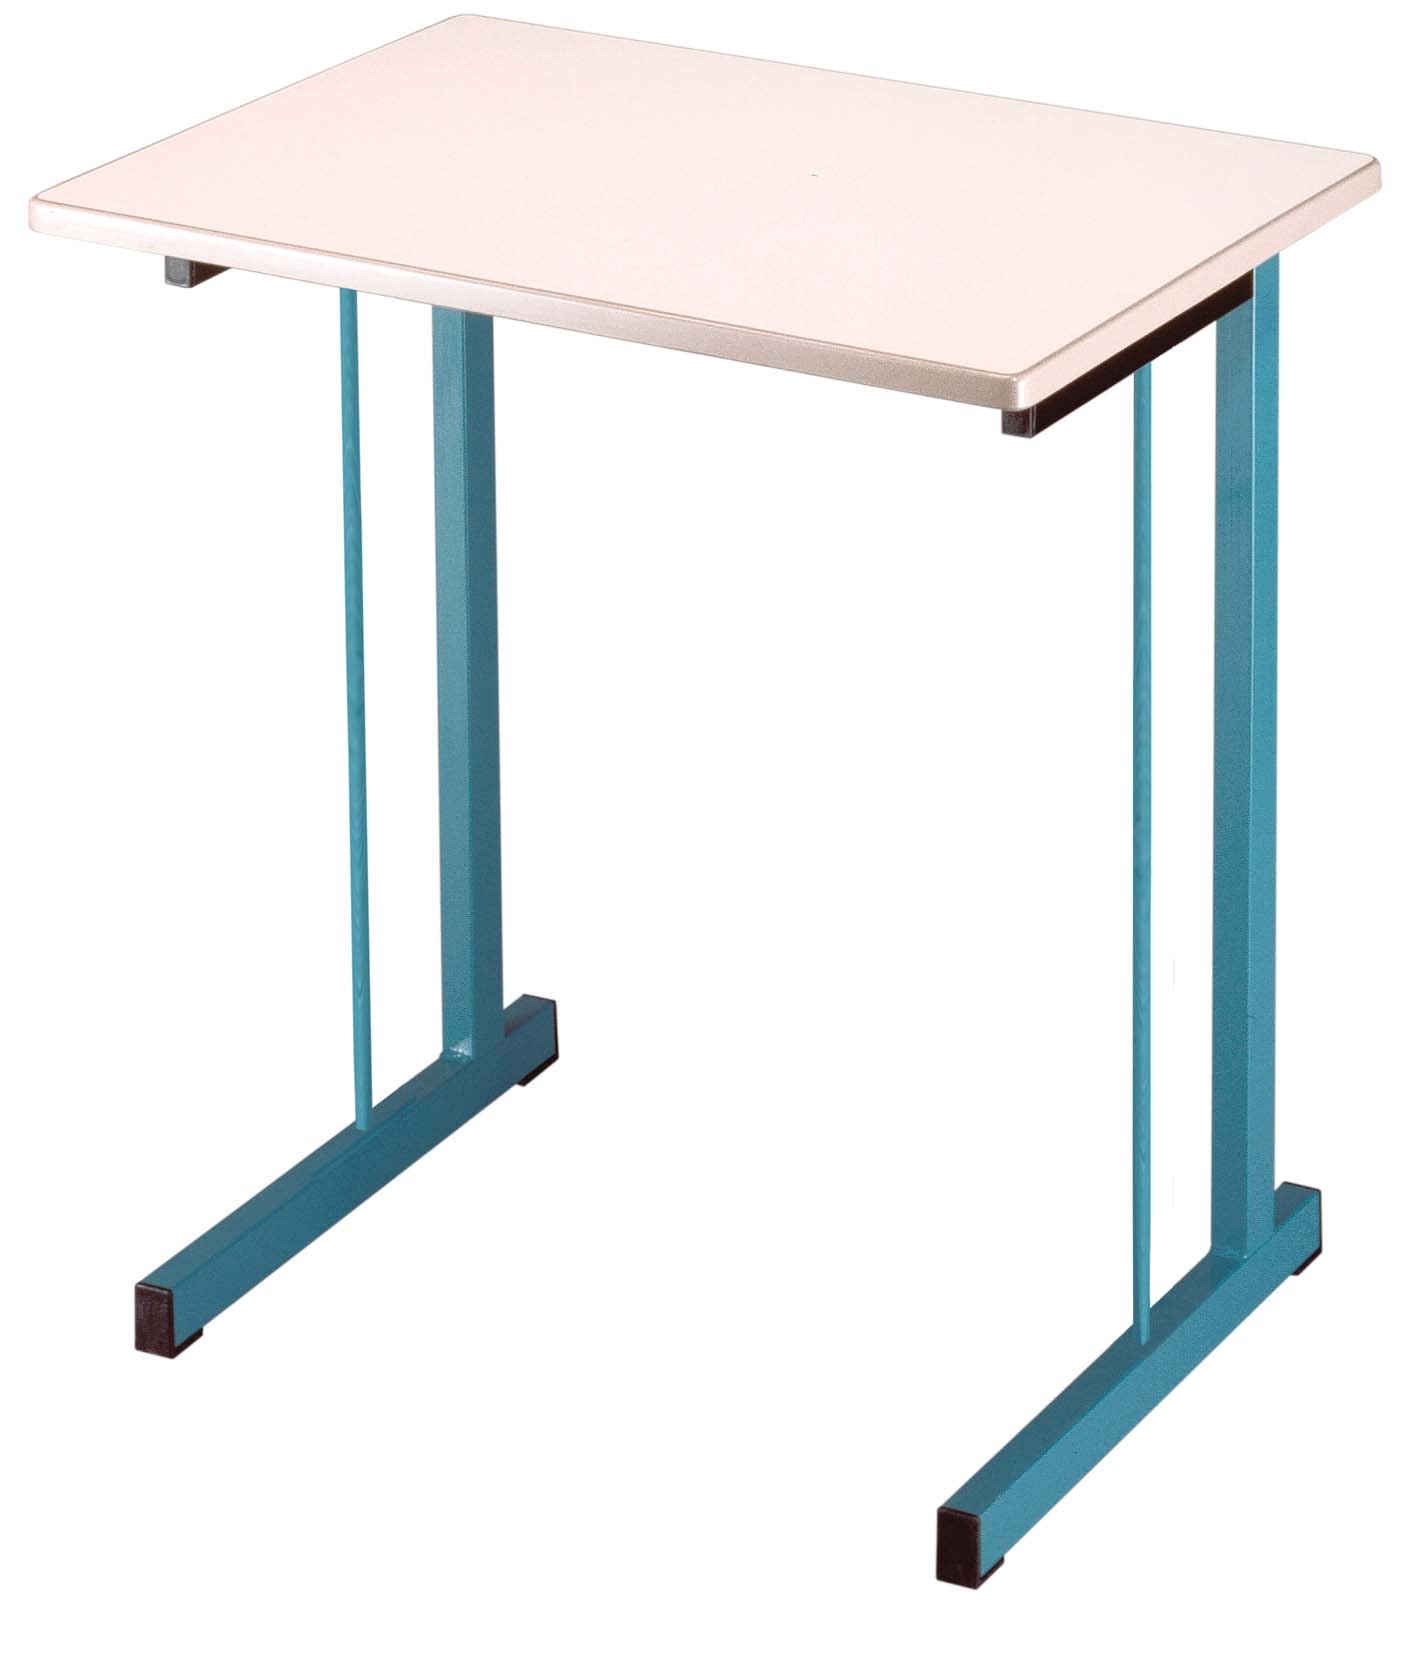 Table scolaire START 1 Renforcée